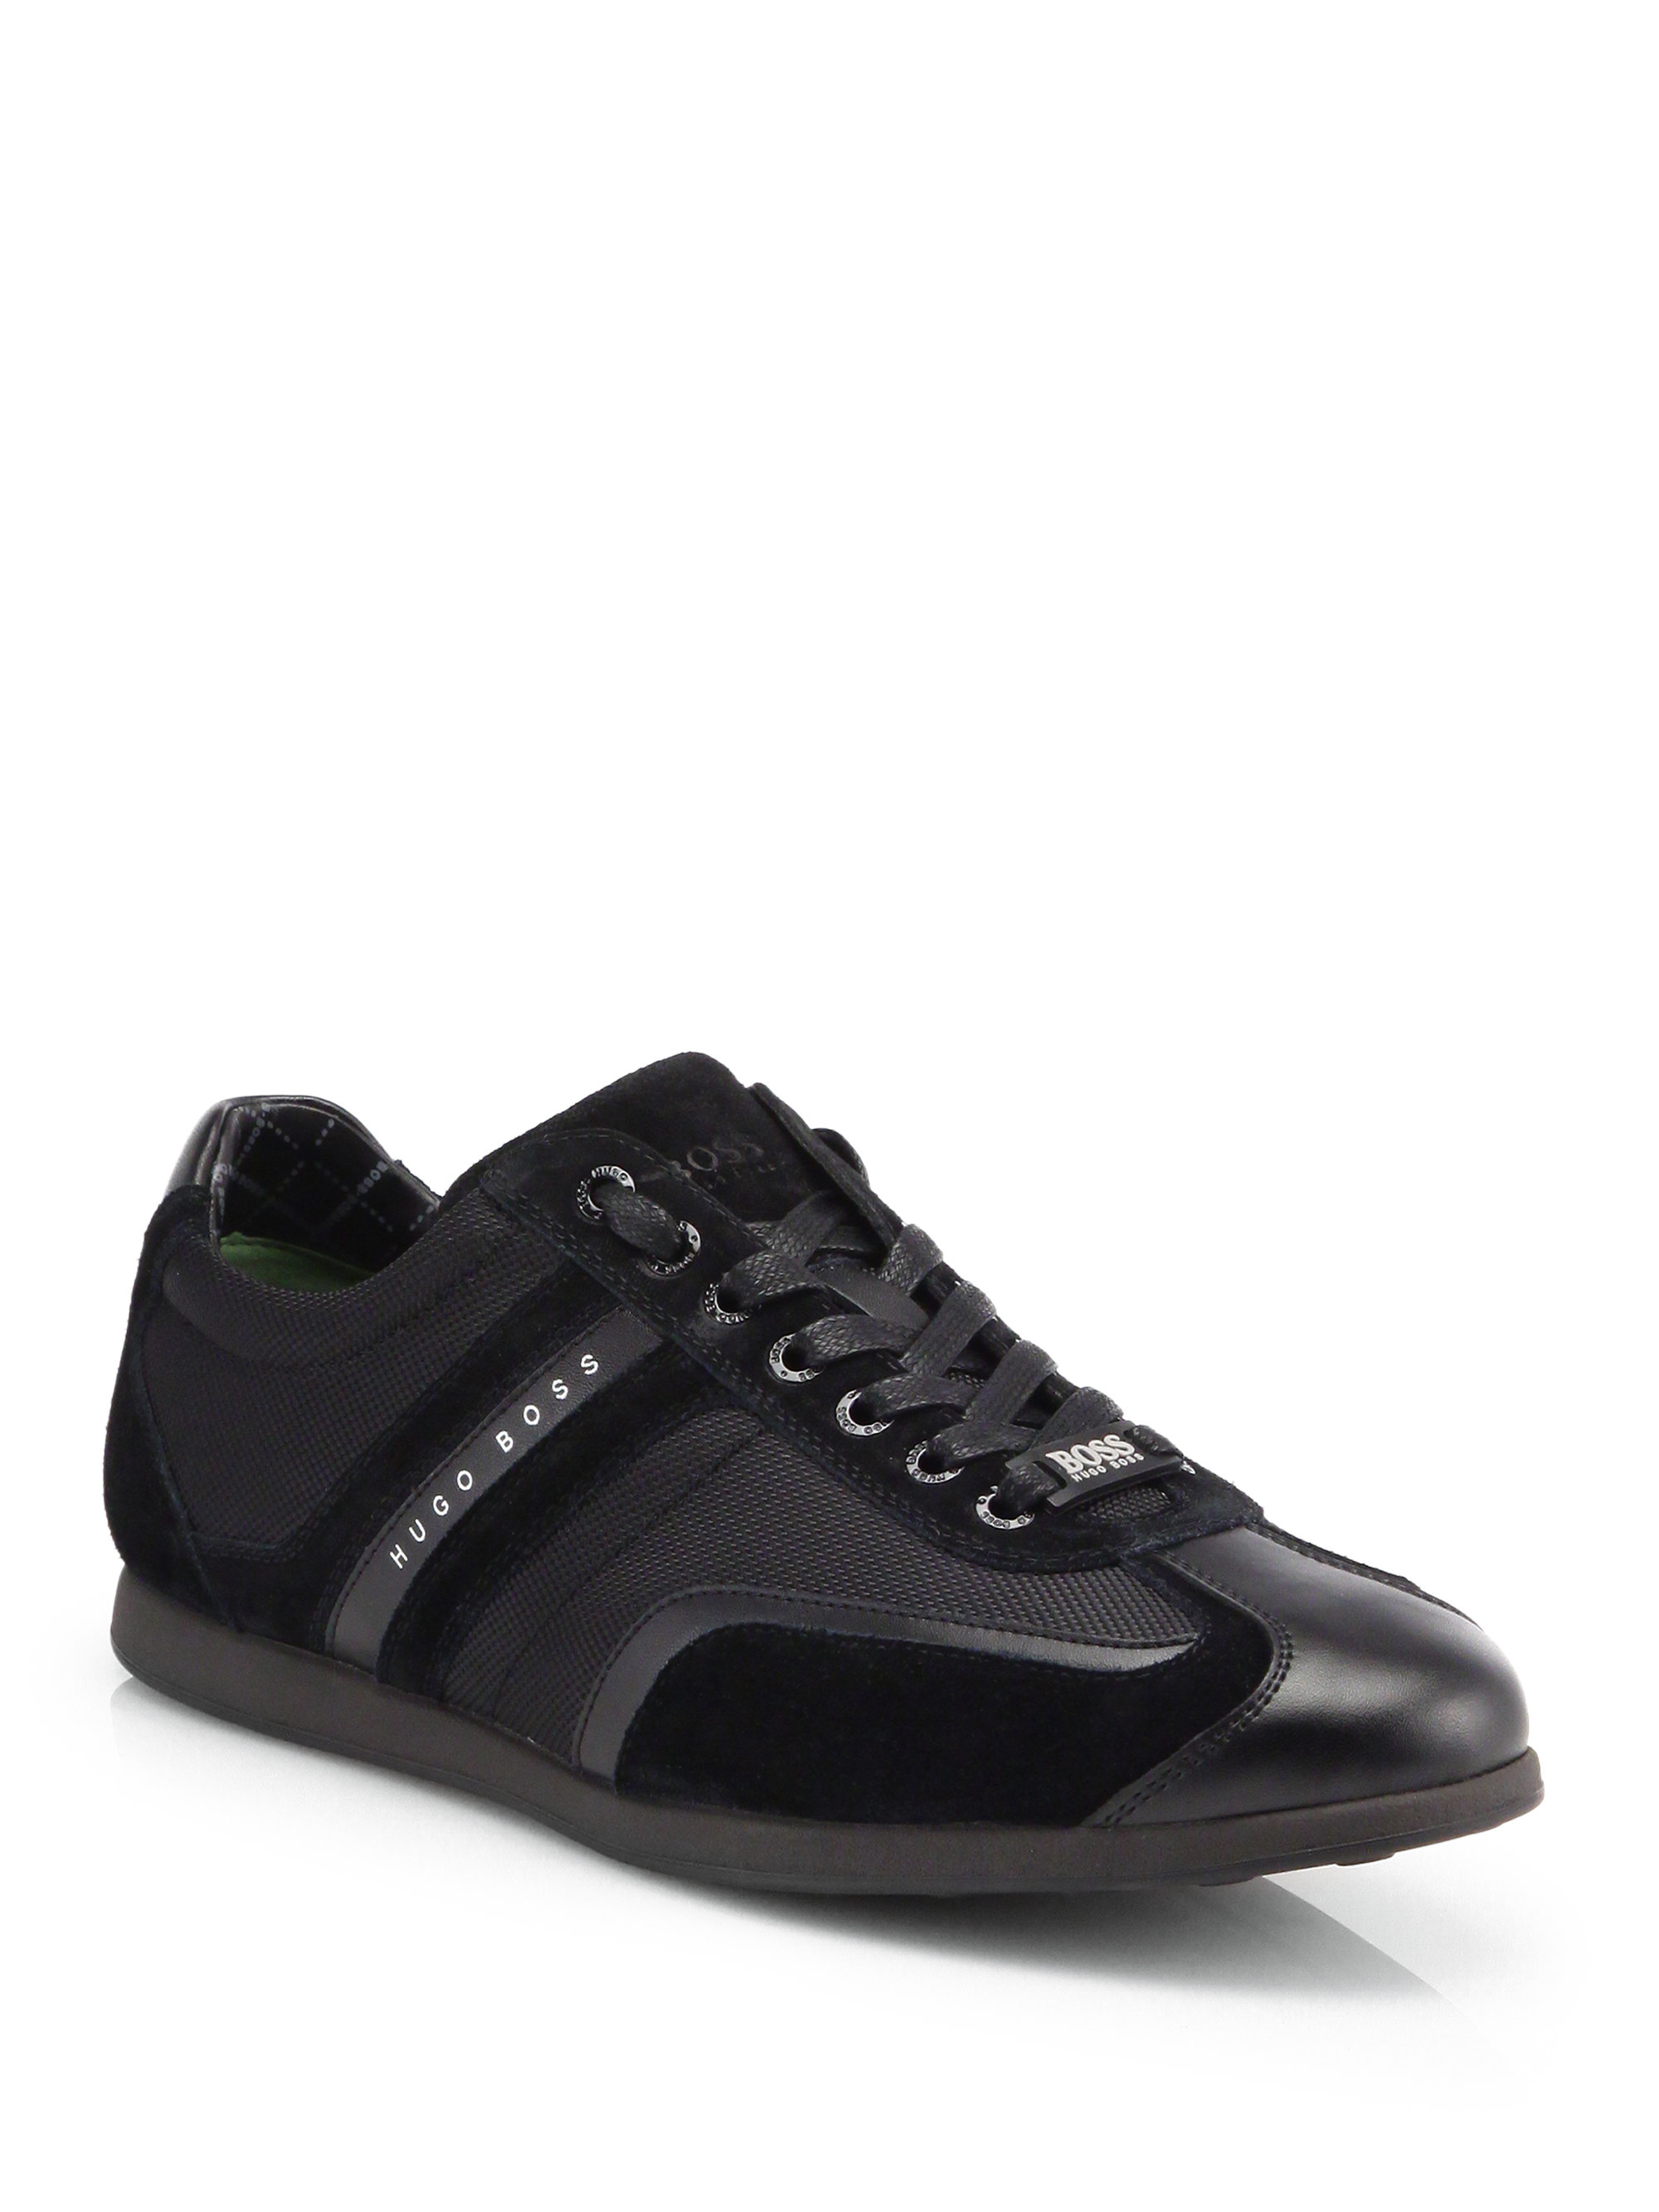 Hugo Boss Sneakers Boss By Hugo Boss Stiven Lowtop Sneakers In Black For Men